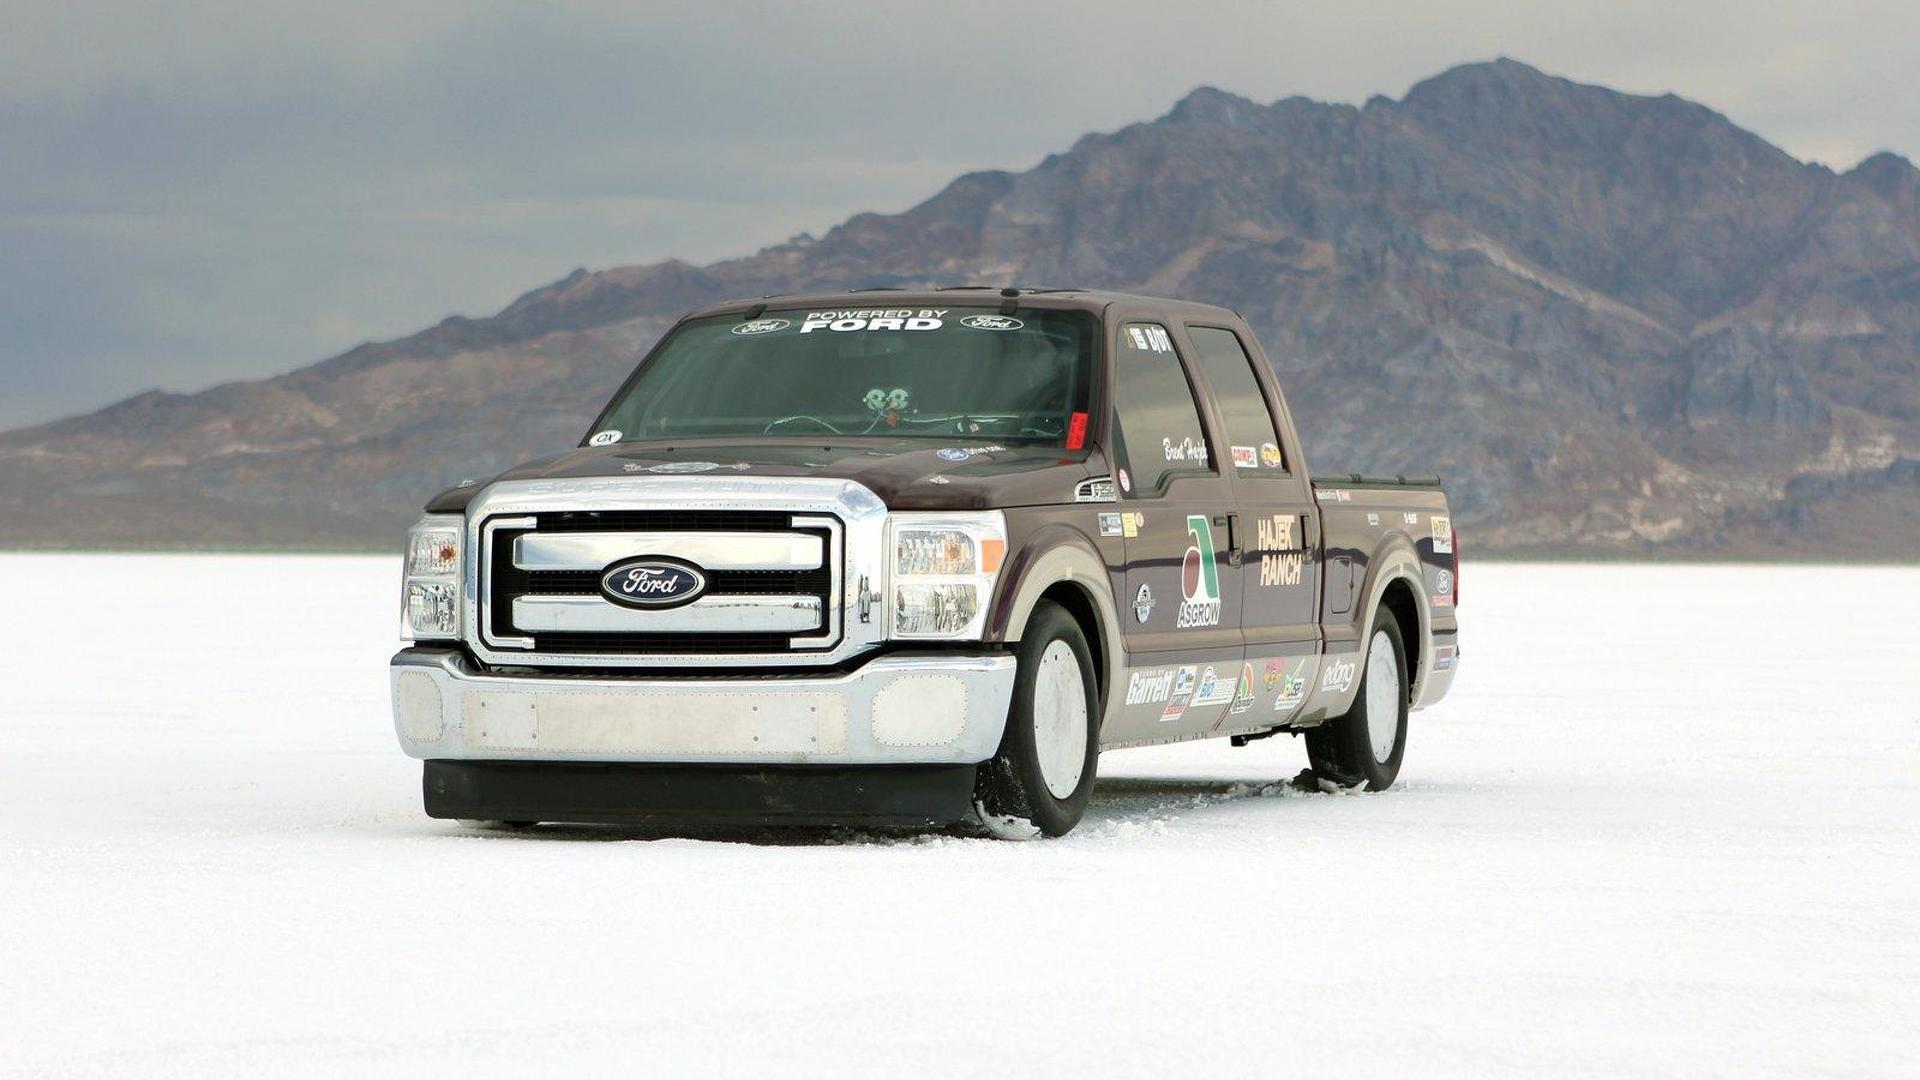 Two land speed records cracked with Ford F-250 Super Duty